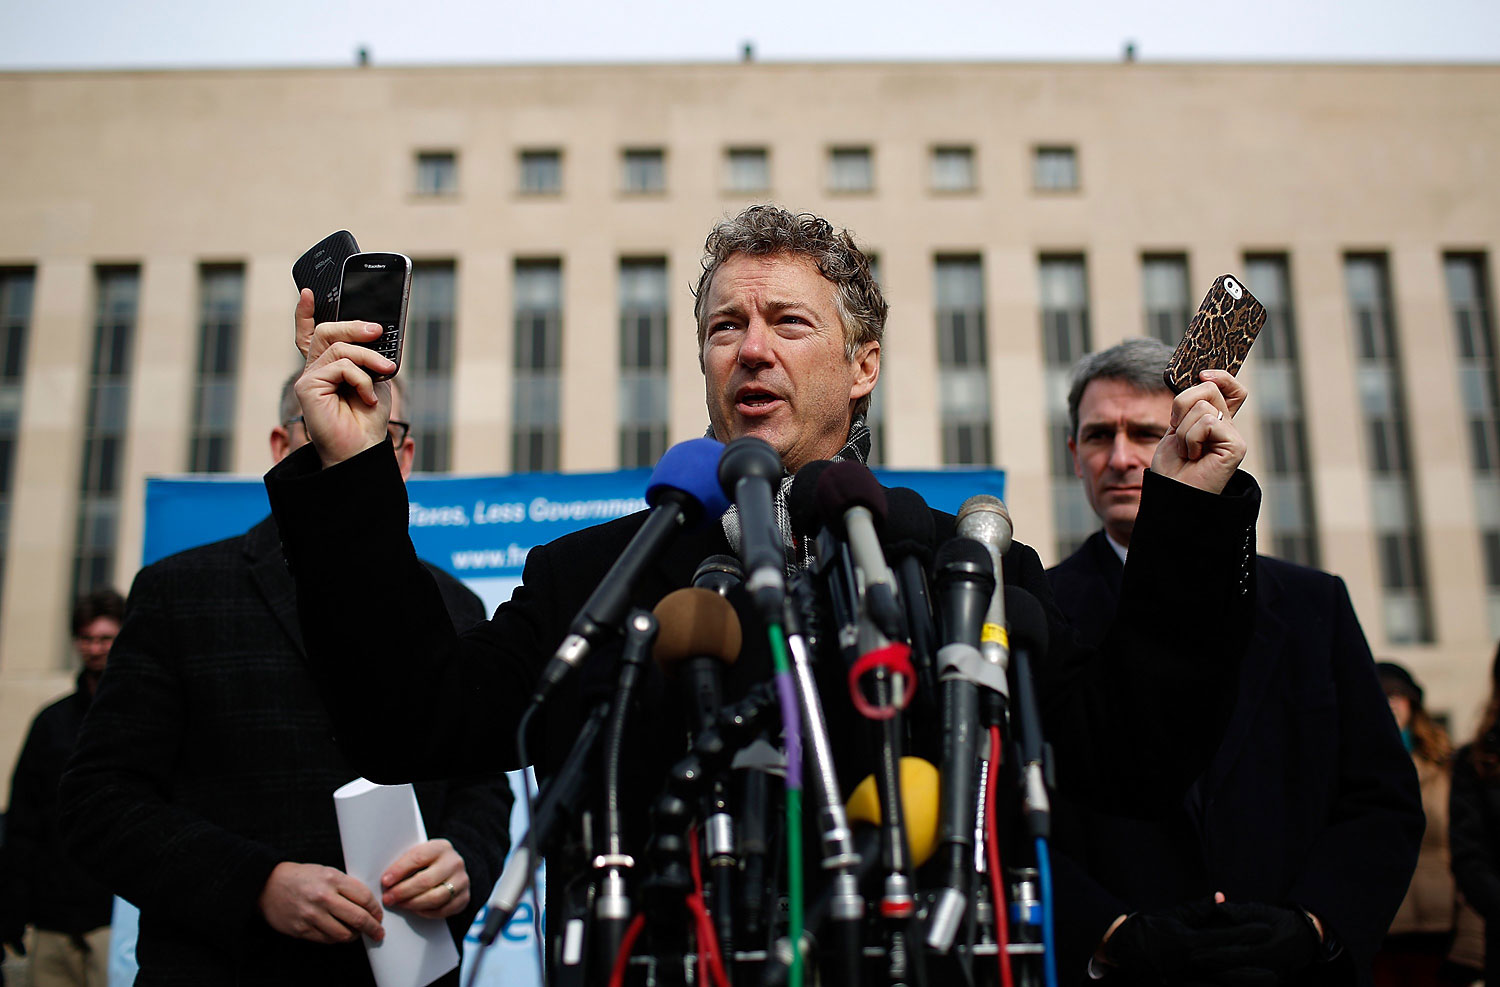 Sen. Rand Paul holds up a group of cell phones in front of U.S. District Court to announce the filing of a class action lawsuit against the administration of U.S. President Barack Obama, Feb. 12. 2014.